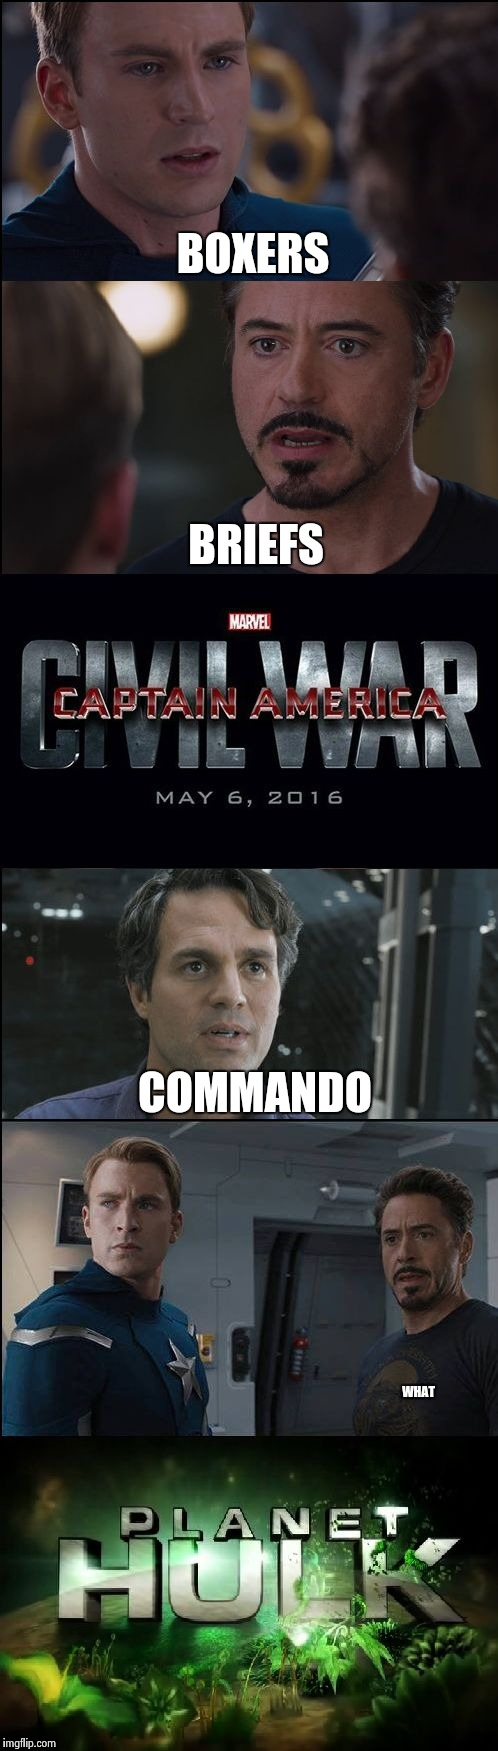 Civil War/Planet Hulk | BOXERS COMMANDO BRIEFS WHAT | image tagged in civil war/planet hulk | made w/ Imgflip meme maker